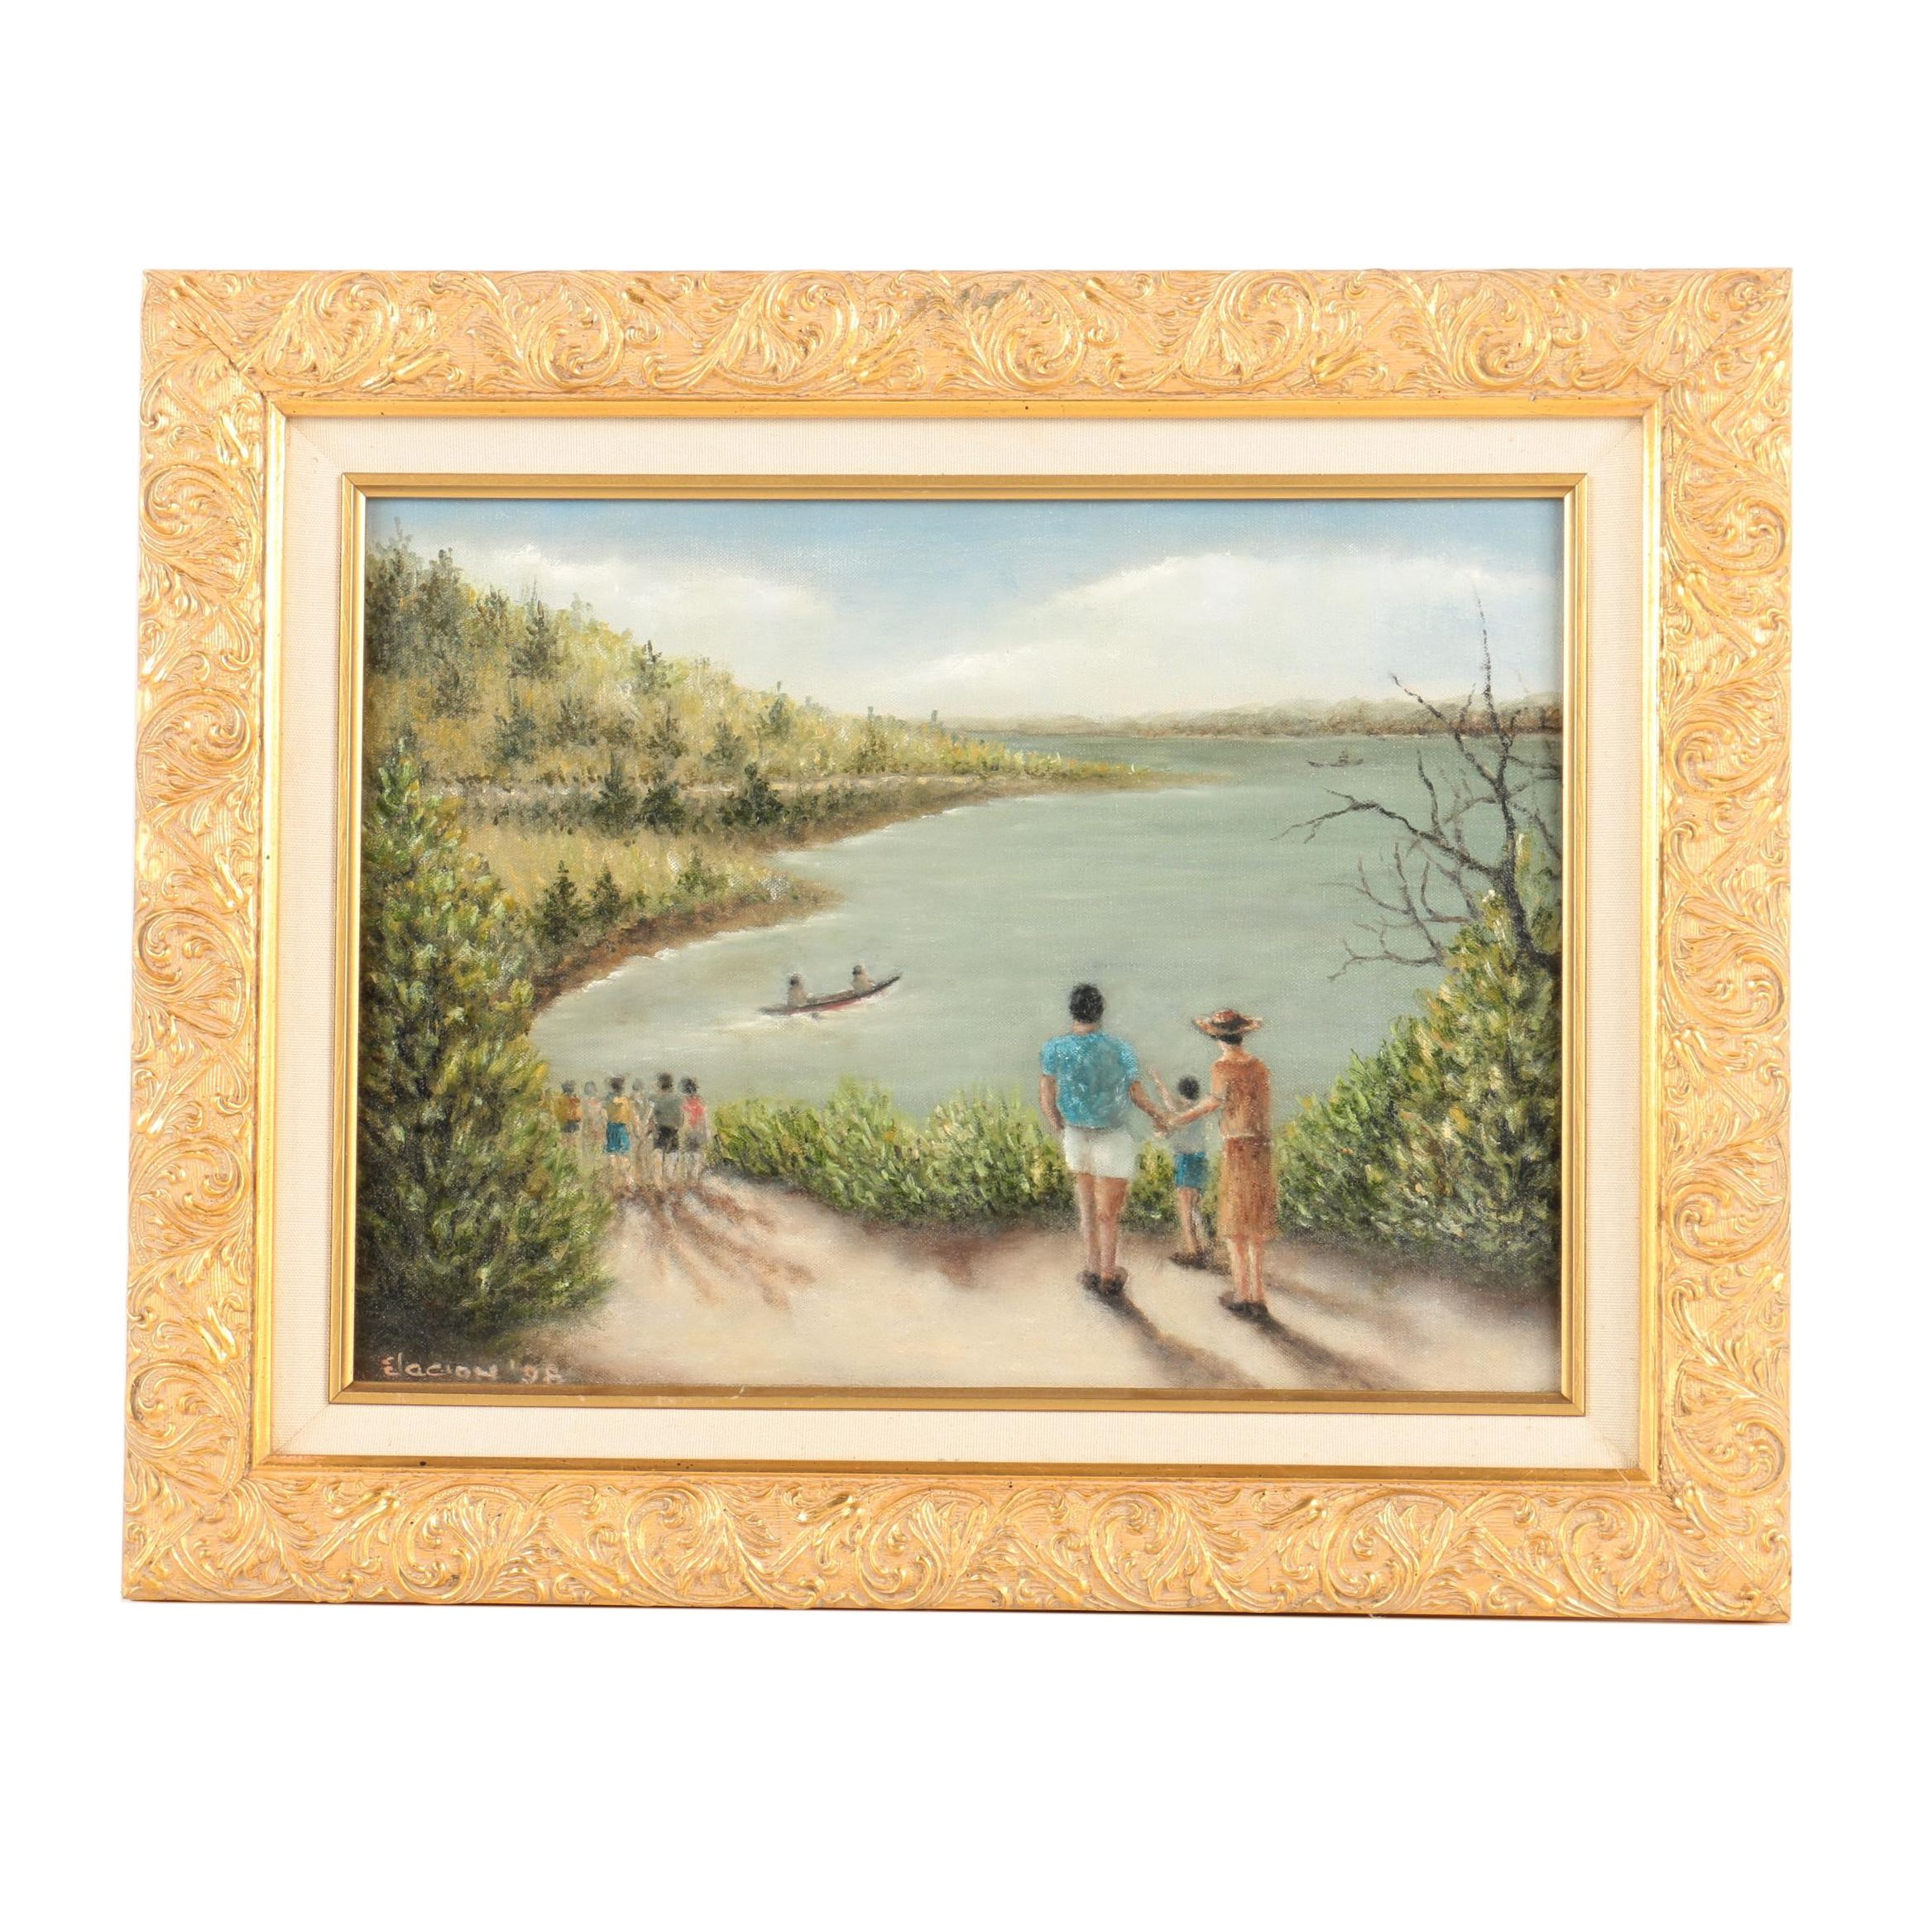 Anthony S. Elacion Oil Painting on Canvas of a Lake Scene